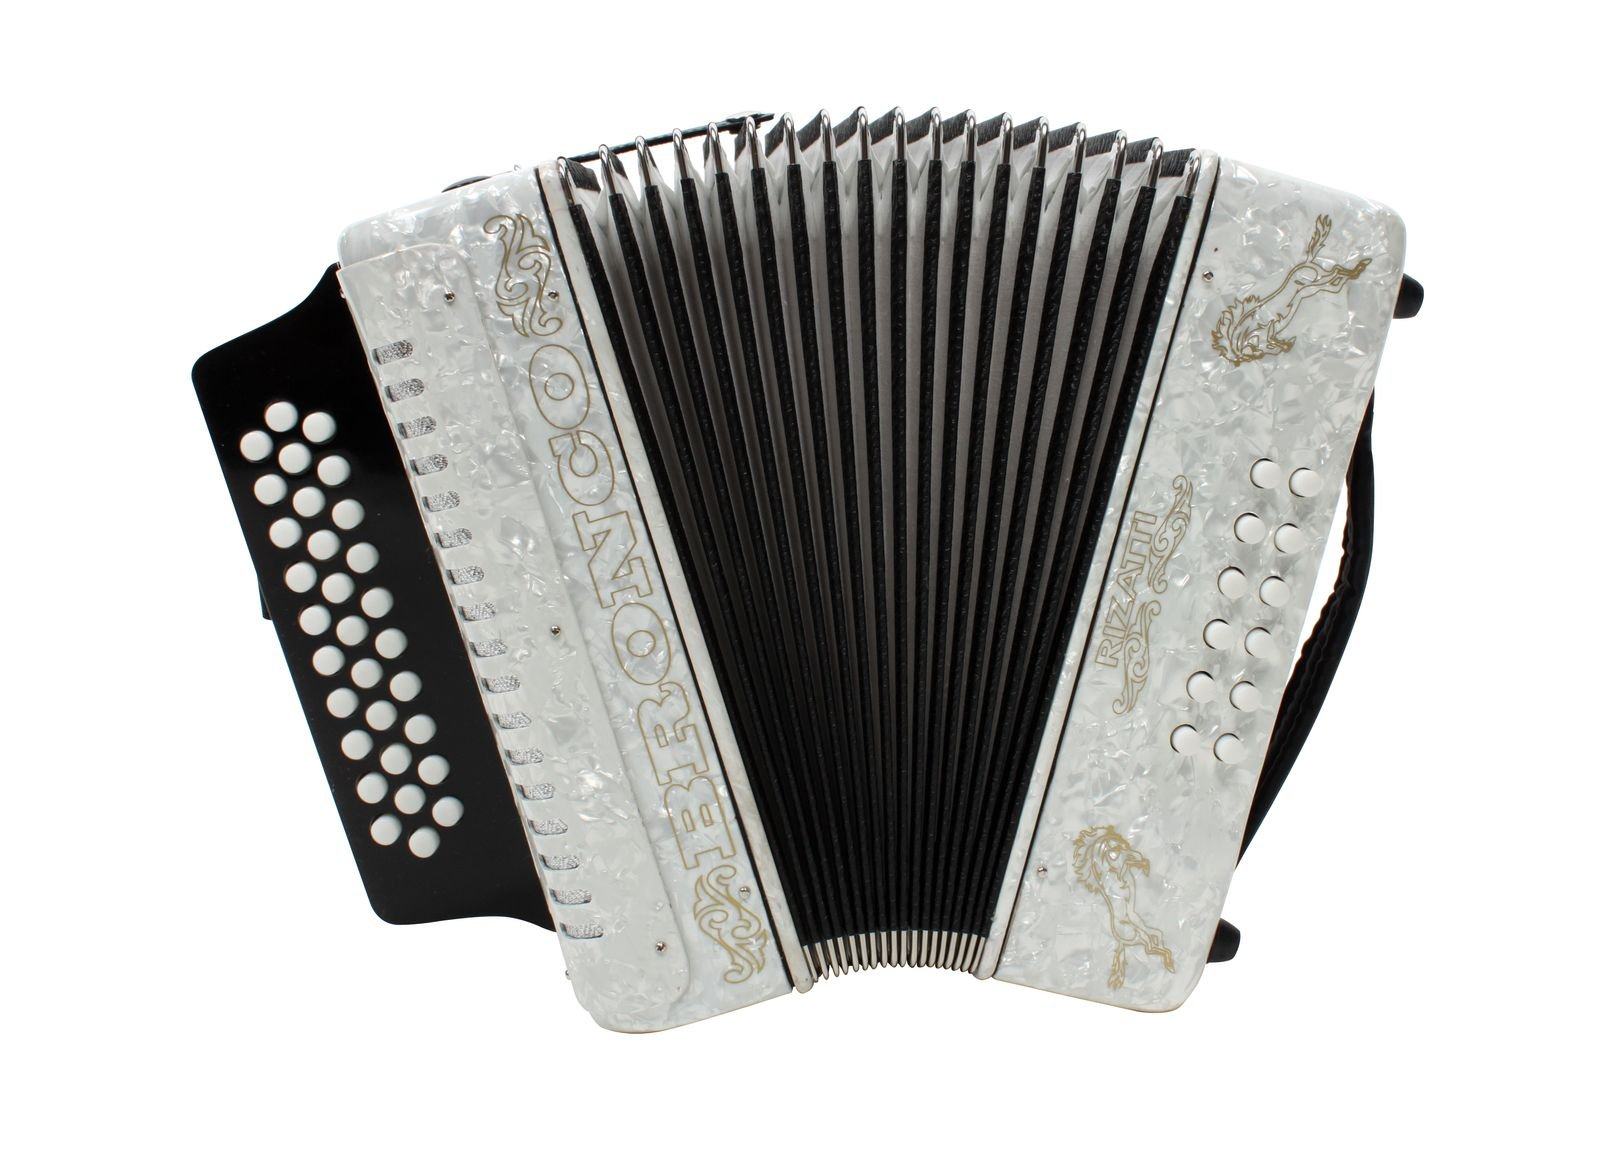 Rizatti Bronco RB31FW Diatonic Accordion - White - Key F/Bb/Eb by RIZATTI (Image #1)